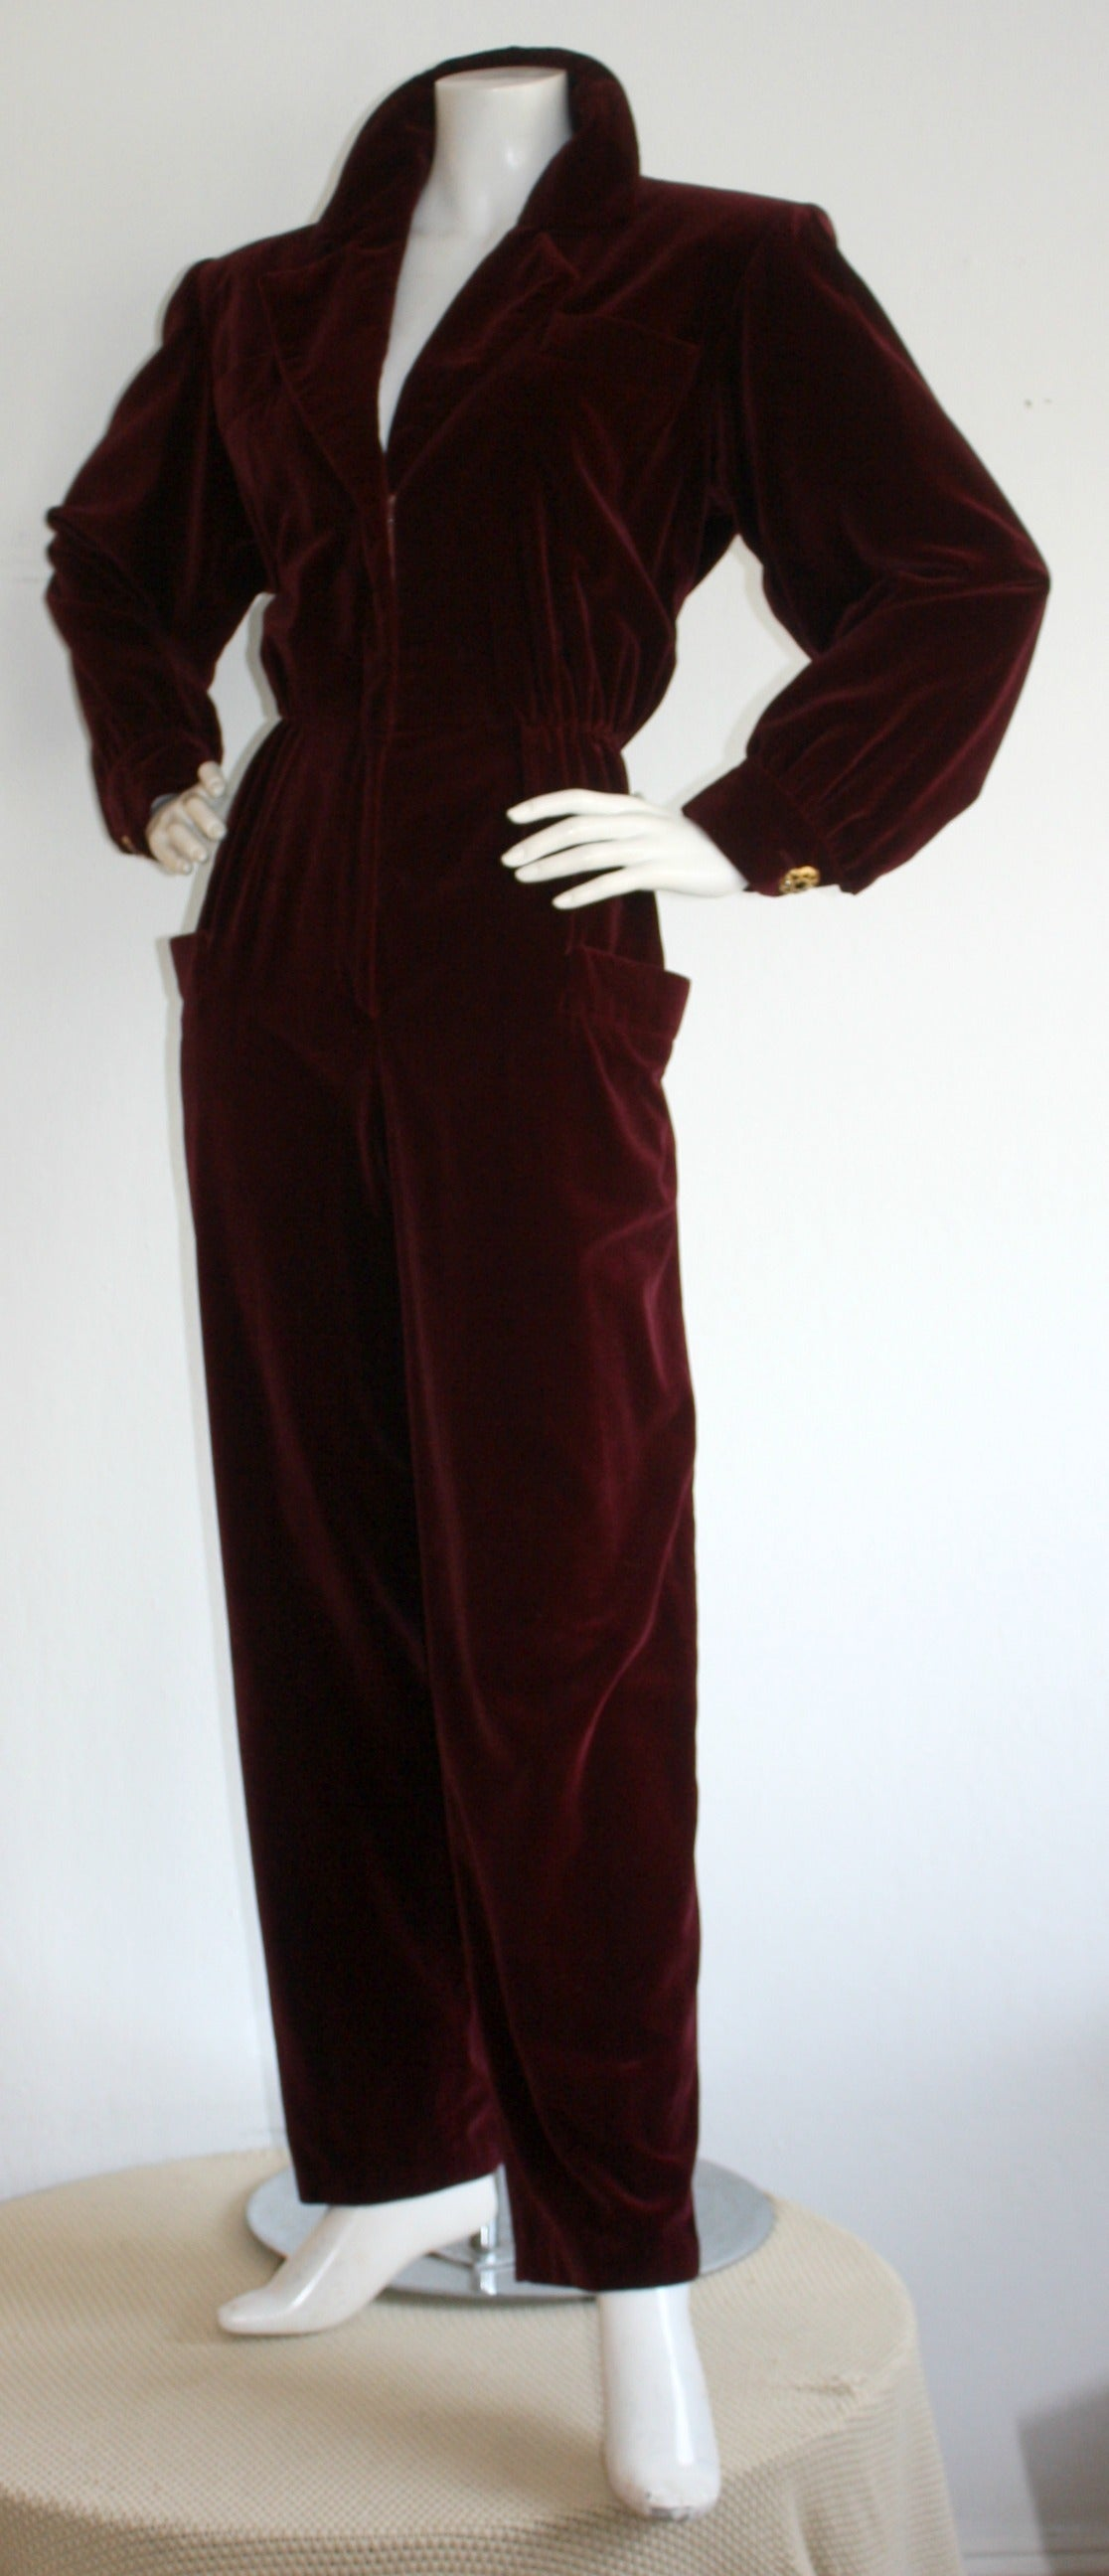 Very important, Iconic, vintage Yves Saint Laurent burgundy velvet jumpsuit! Softest silk velvet, with a pocket at each hip. Features intricate gold buttons at each cuff. Zips up the bodice to control cleavage level. A beautiful piece, that looks